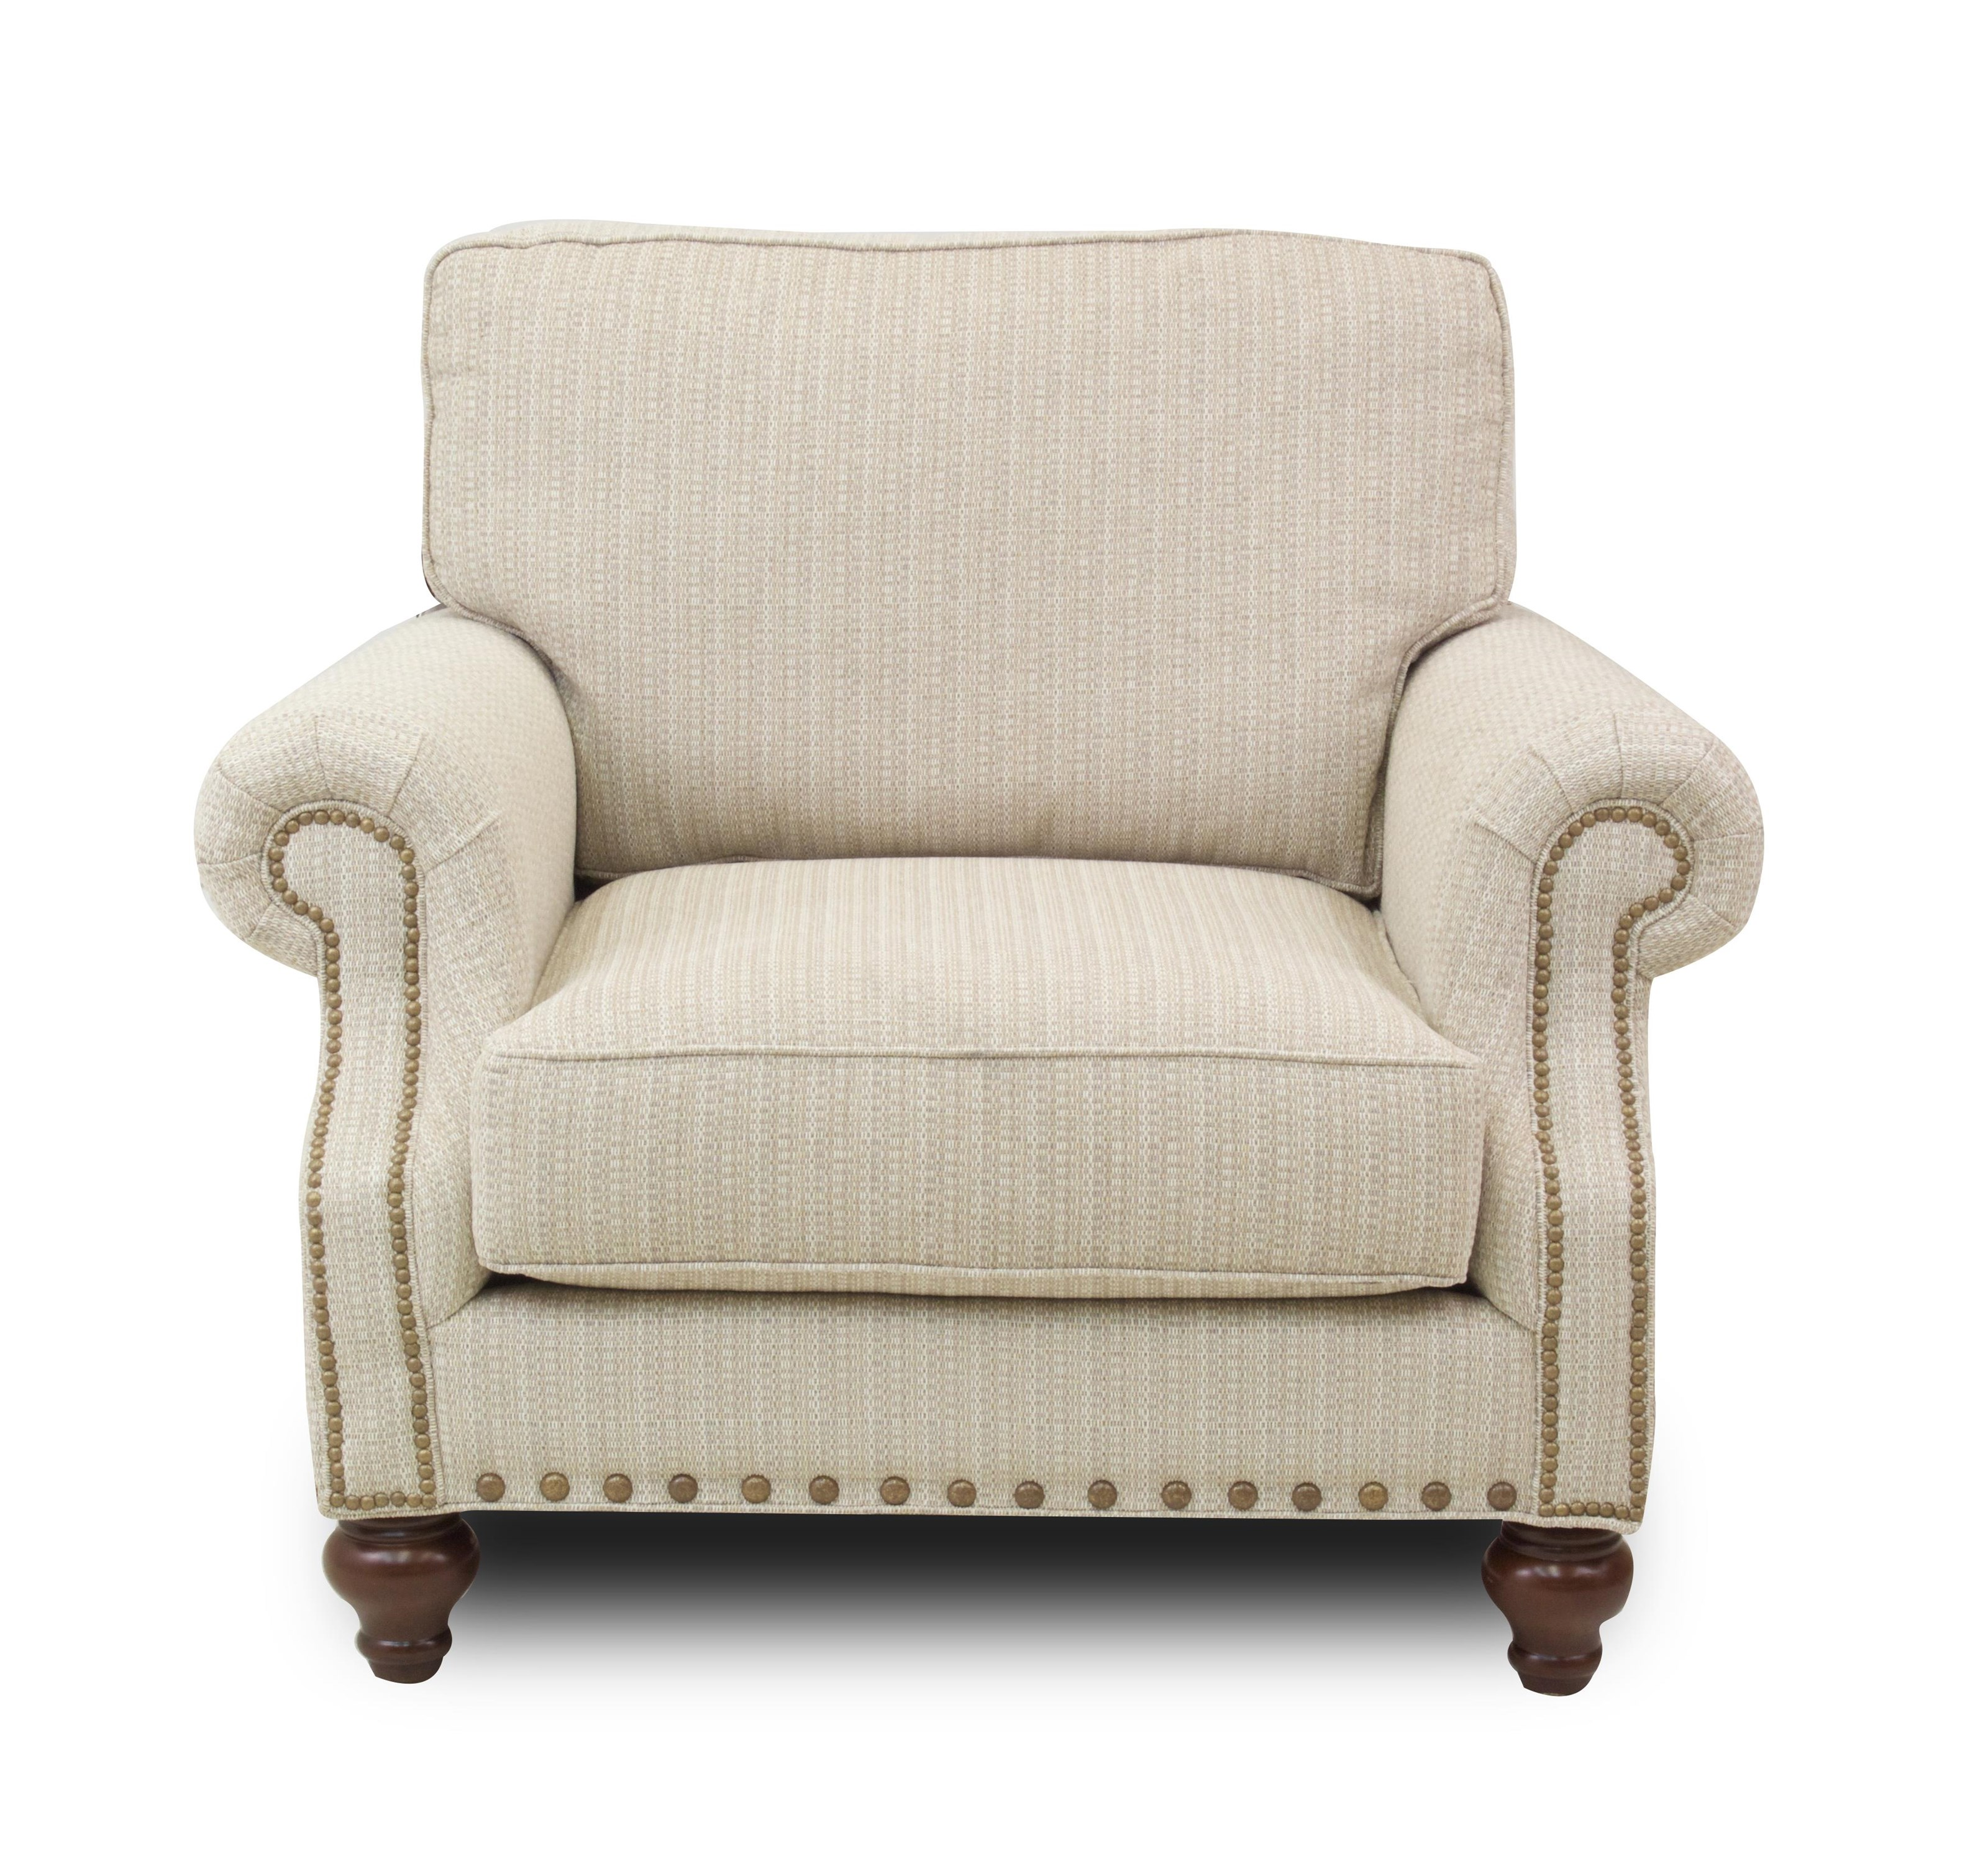 Hickory Craft Marion Chair - Item Number: 17762-C